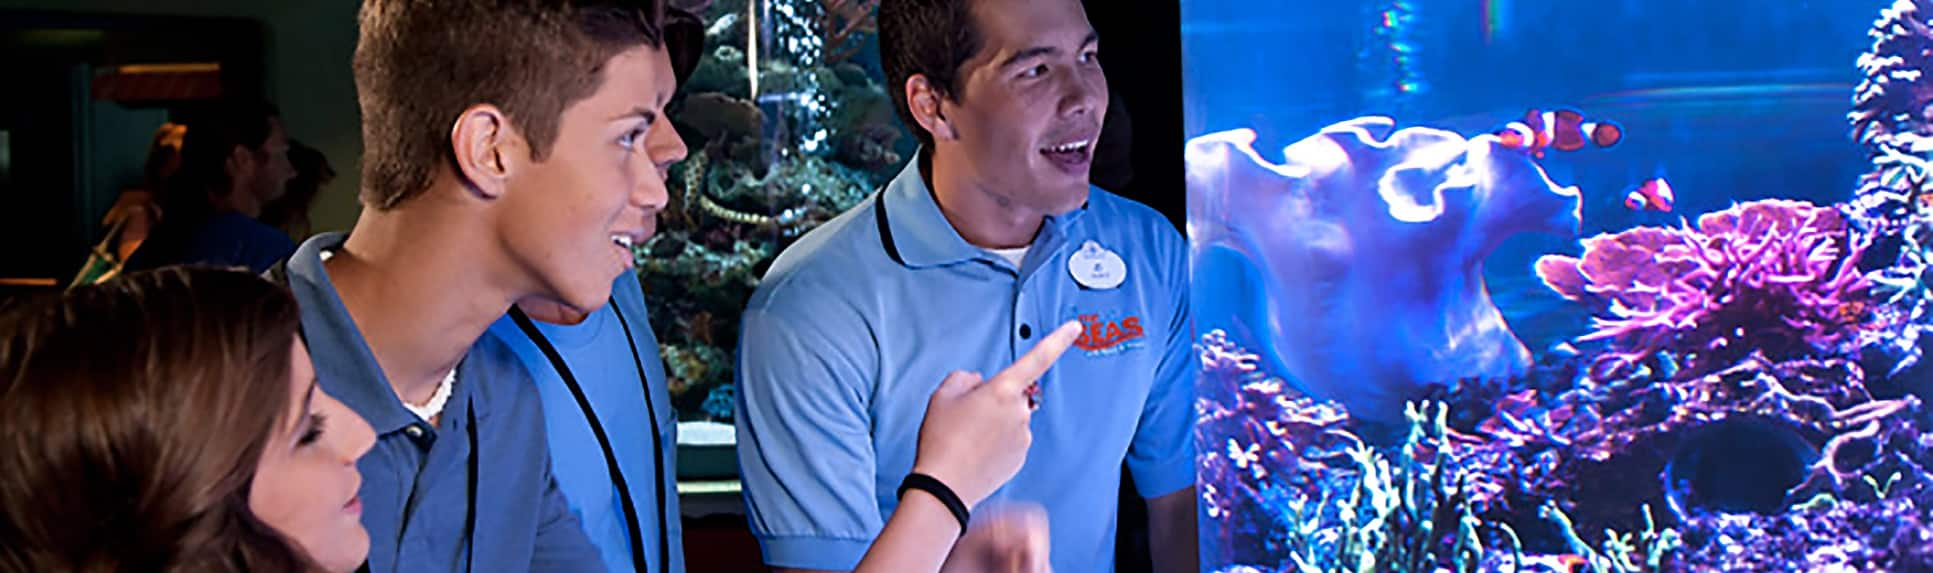 Young adults looking at a fish tank with a Cast Member